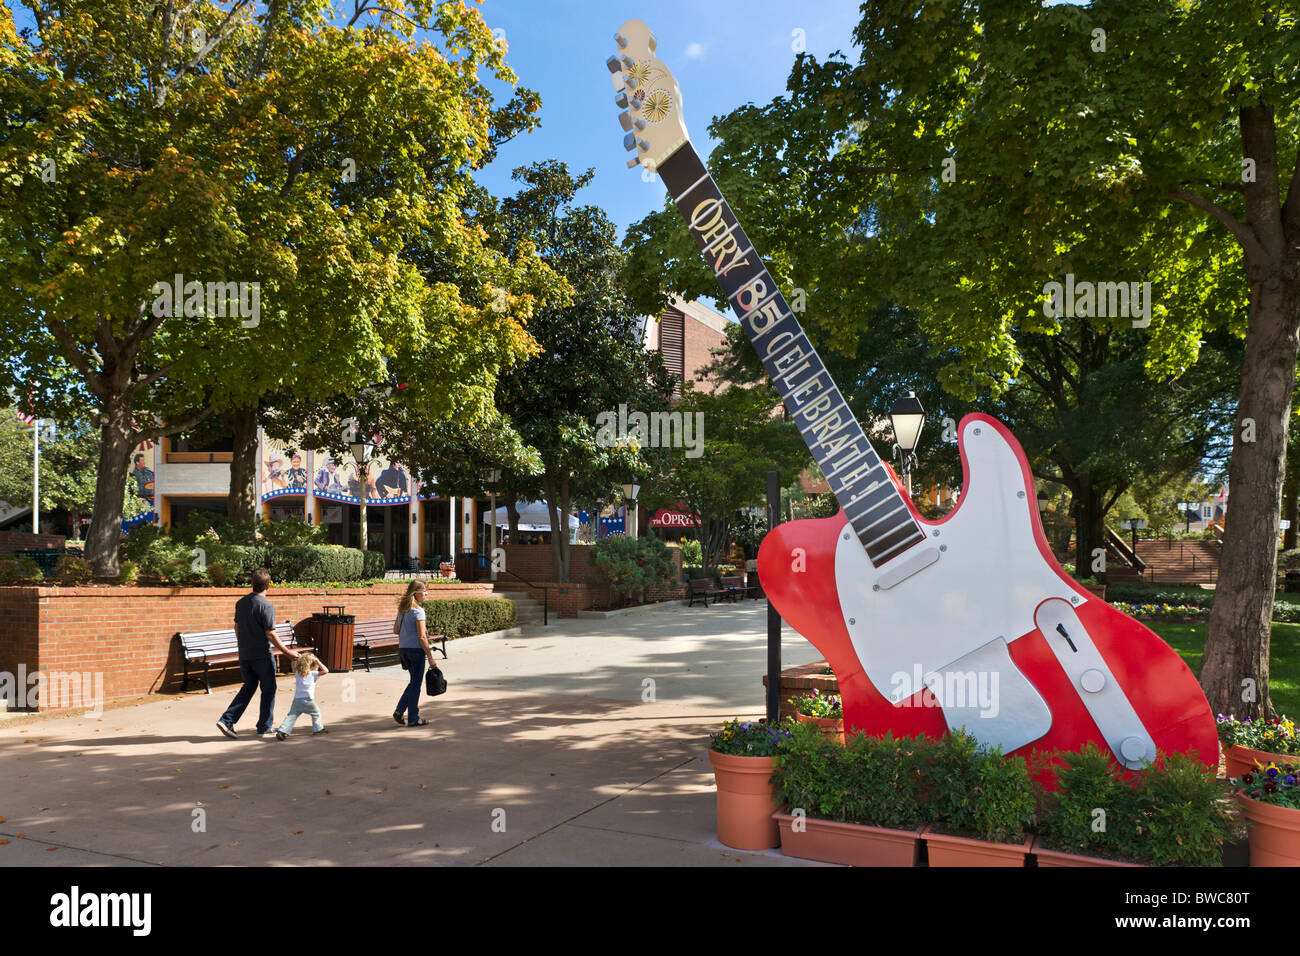 Entrance to the Grand Ole Opry, Opryland, Music Valley, Nashville, Tennessee, USA - Stock Image